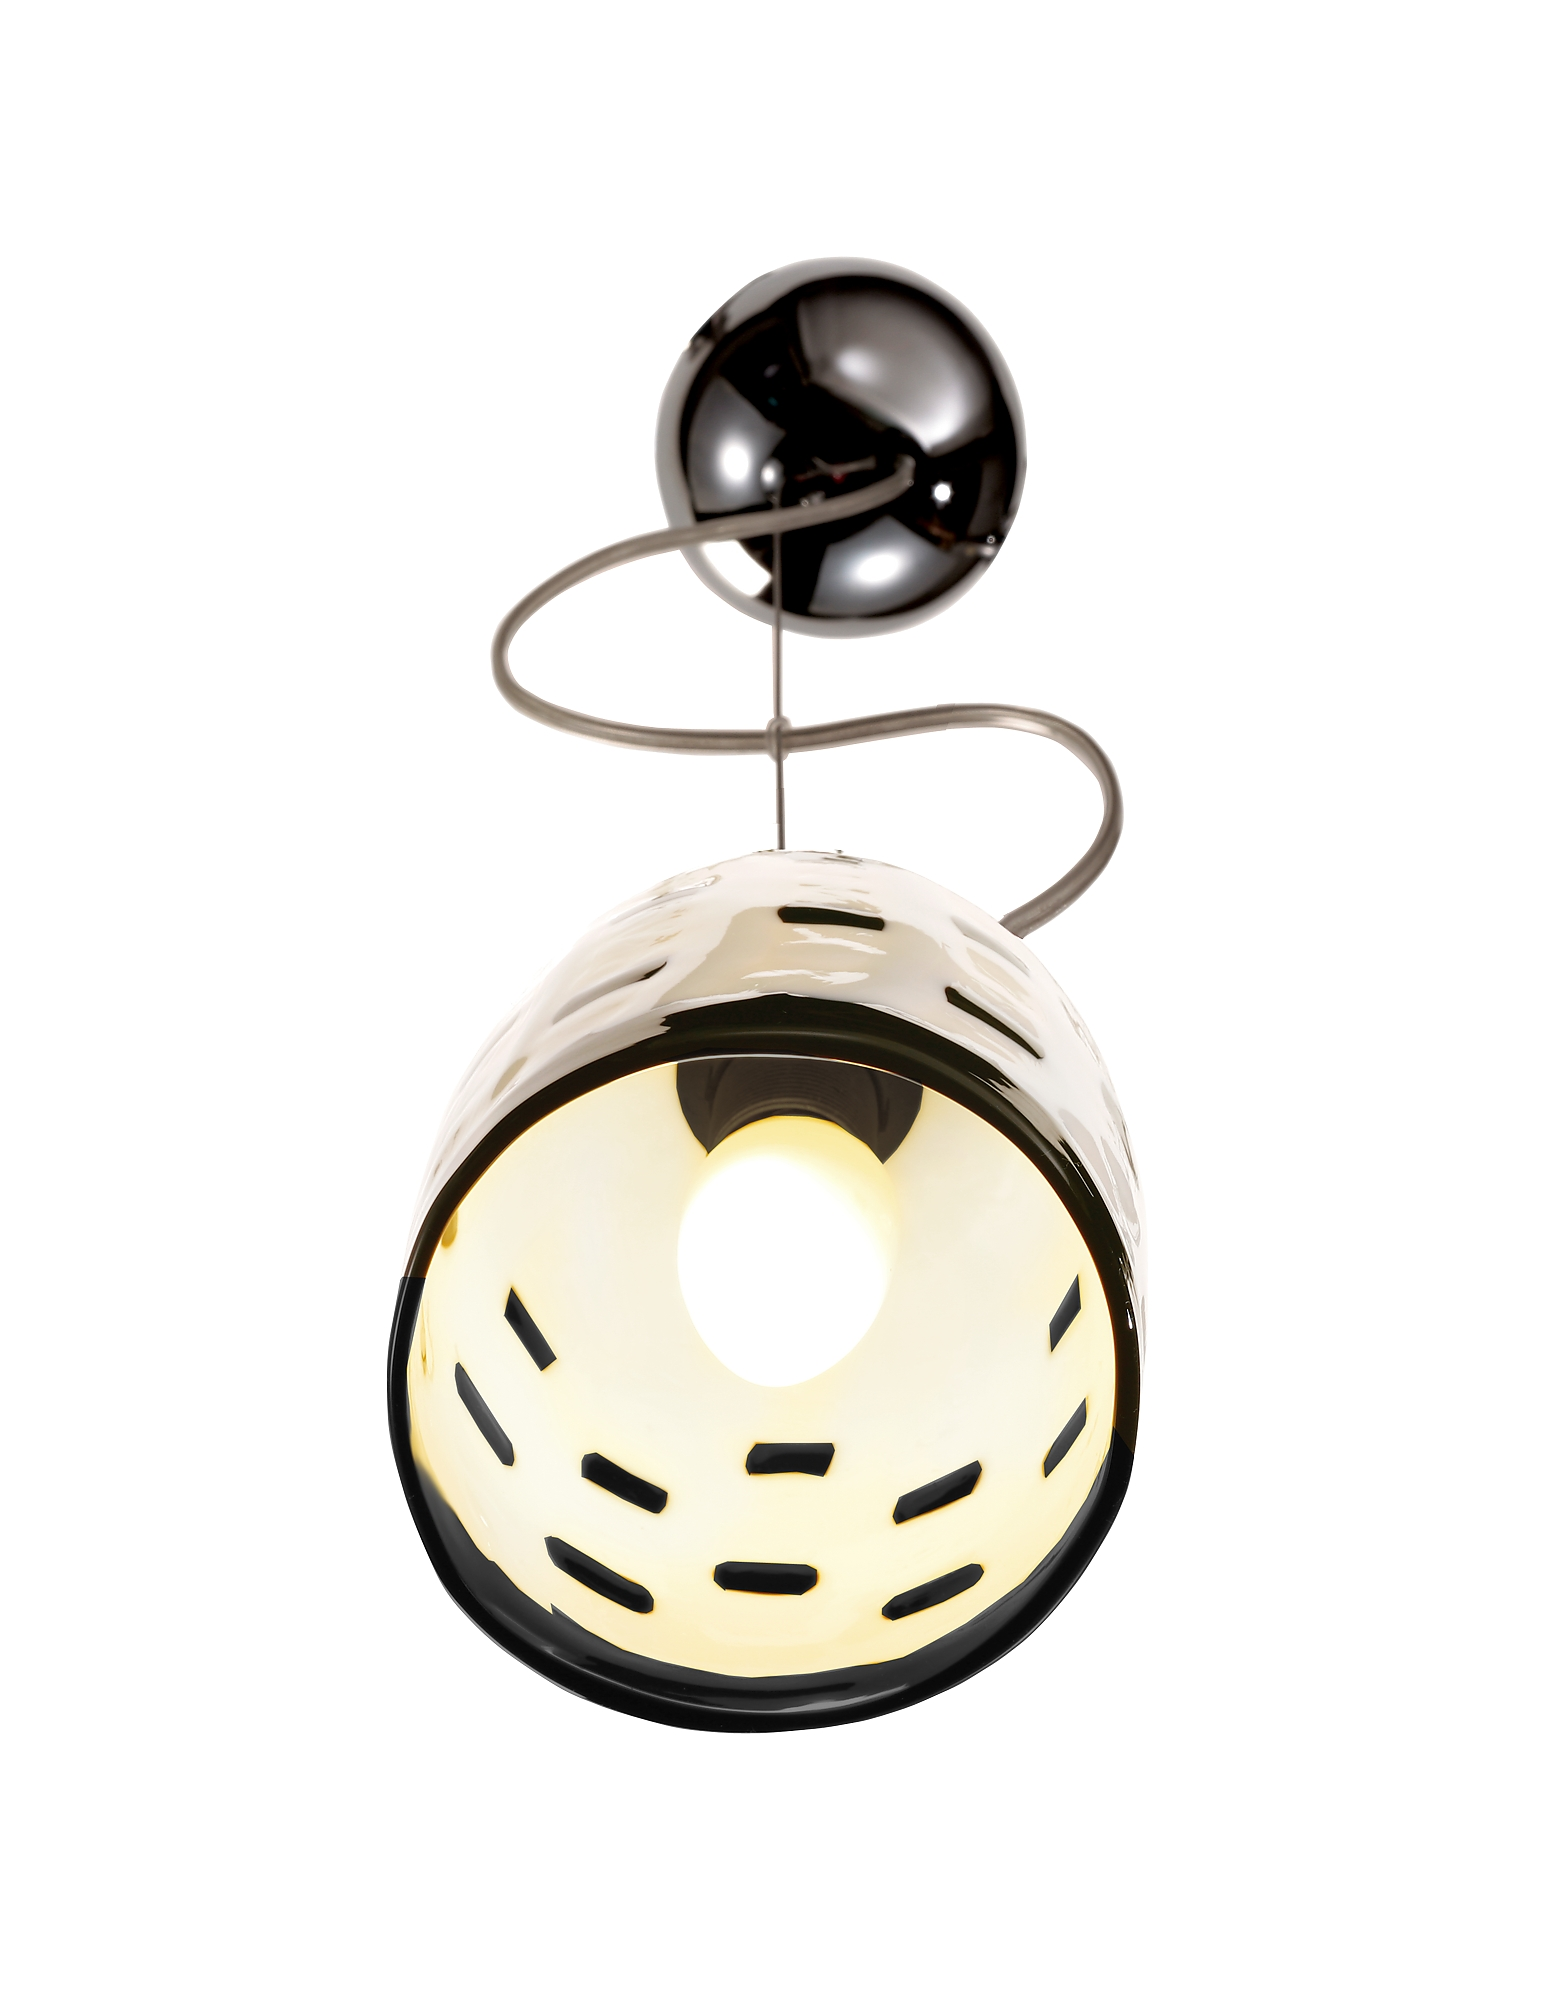 Meg B&W - Black And White Murano Handmade Glass Pendant Lamp от Forzieri.com INT